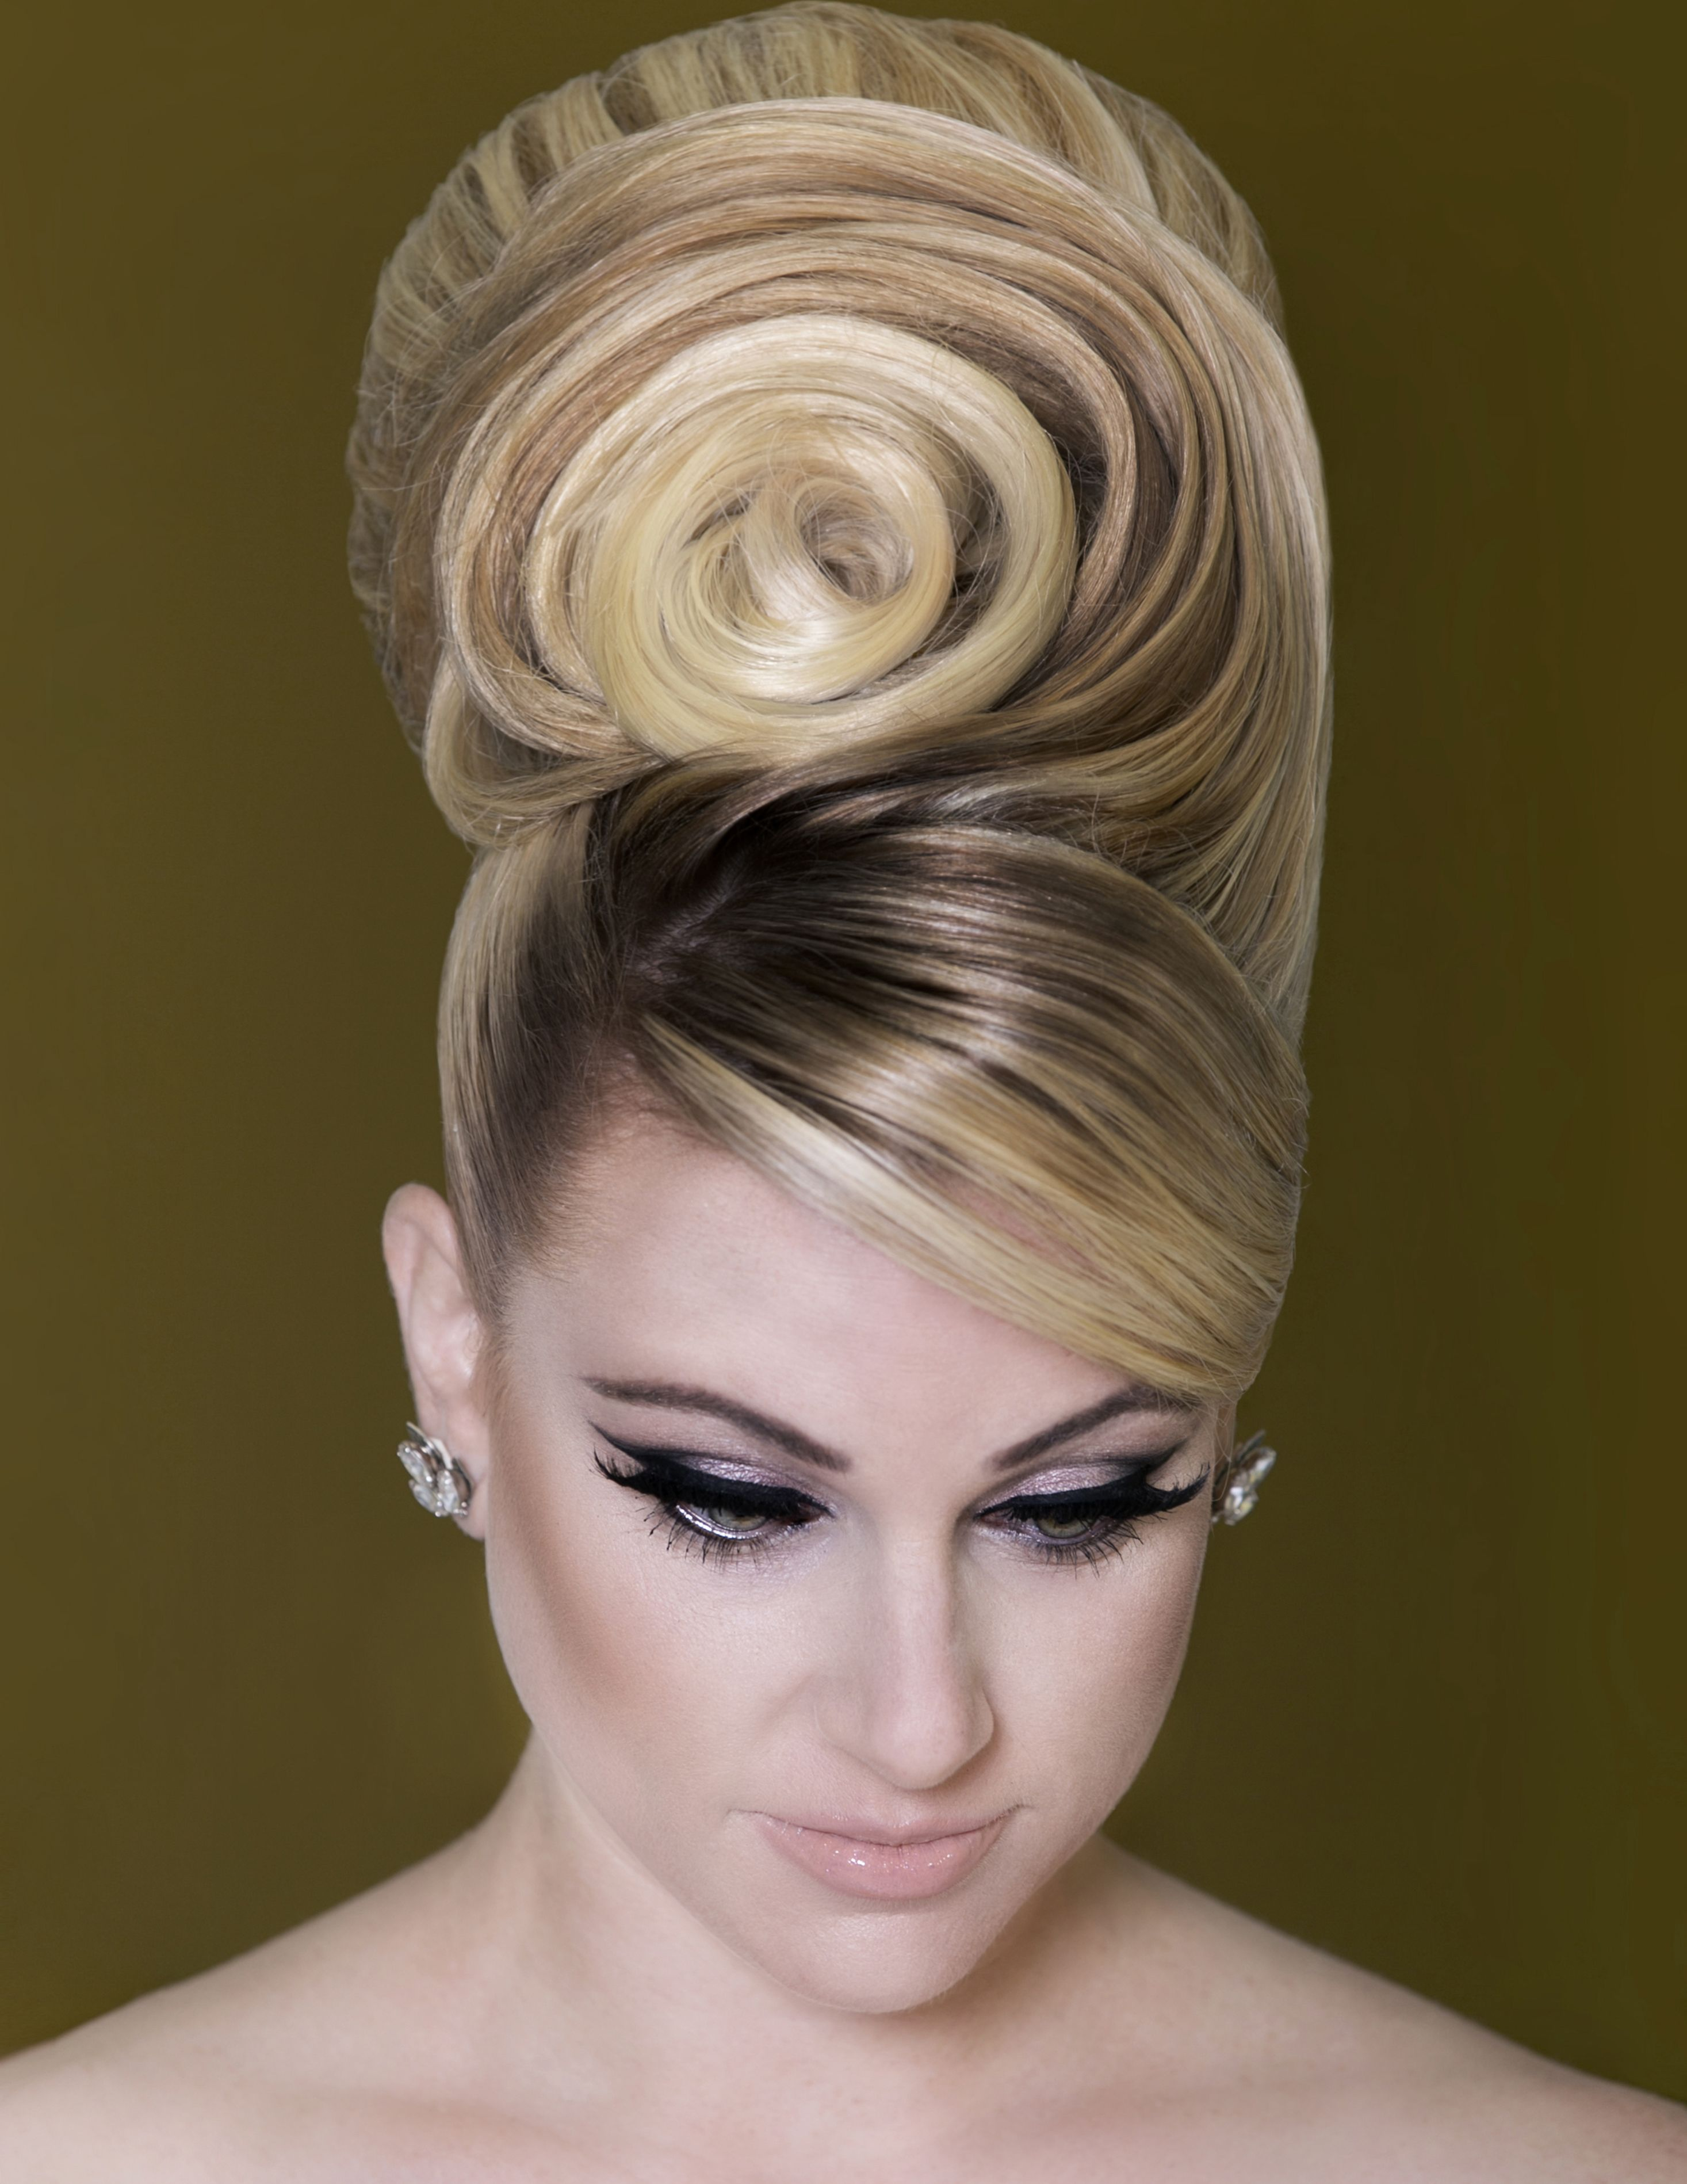 bridal hairstyle trends from earthy to dramatic |the imaginary